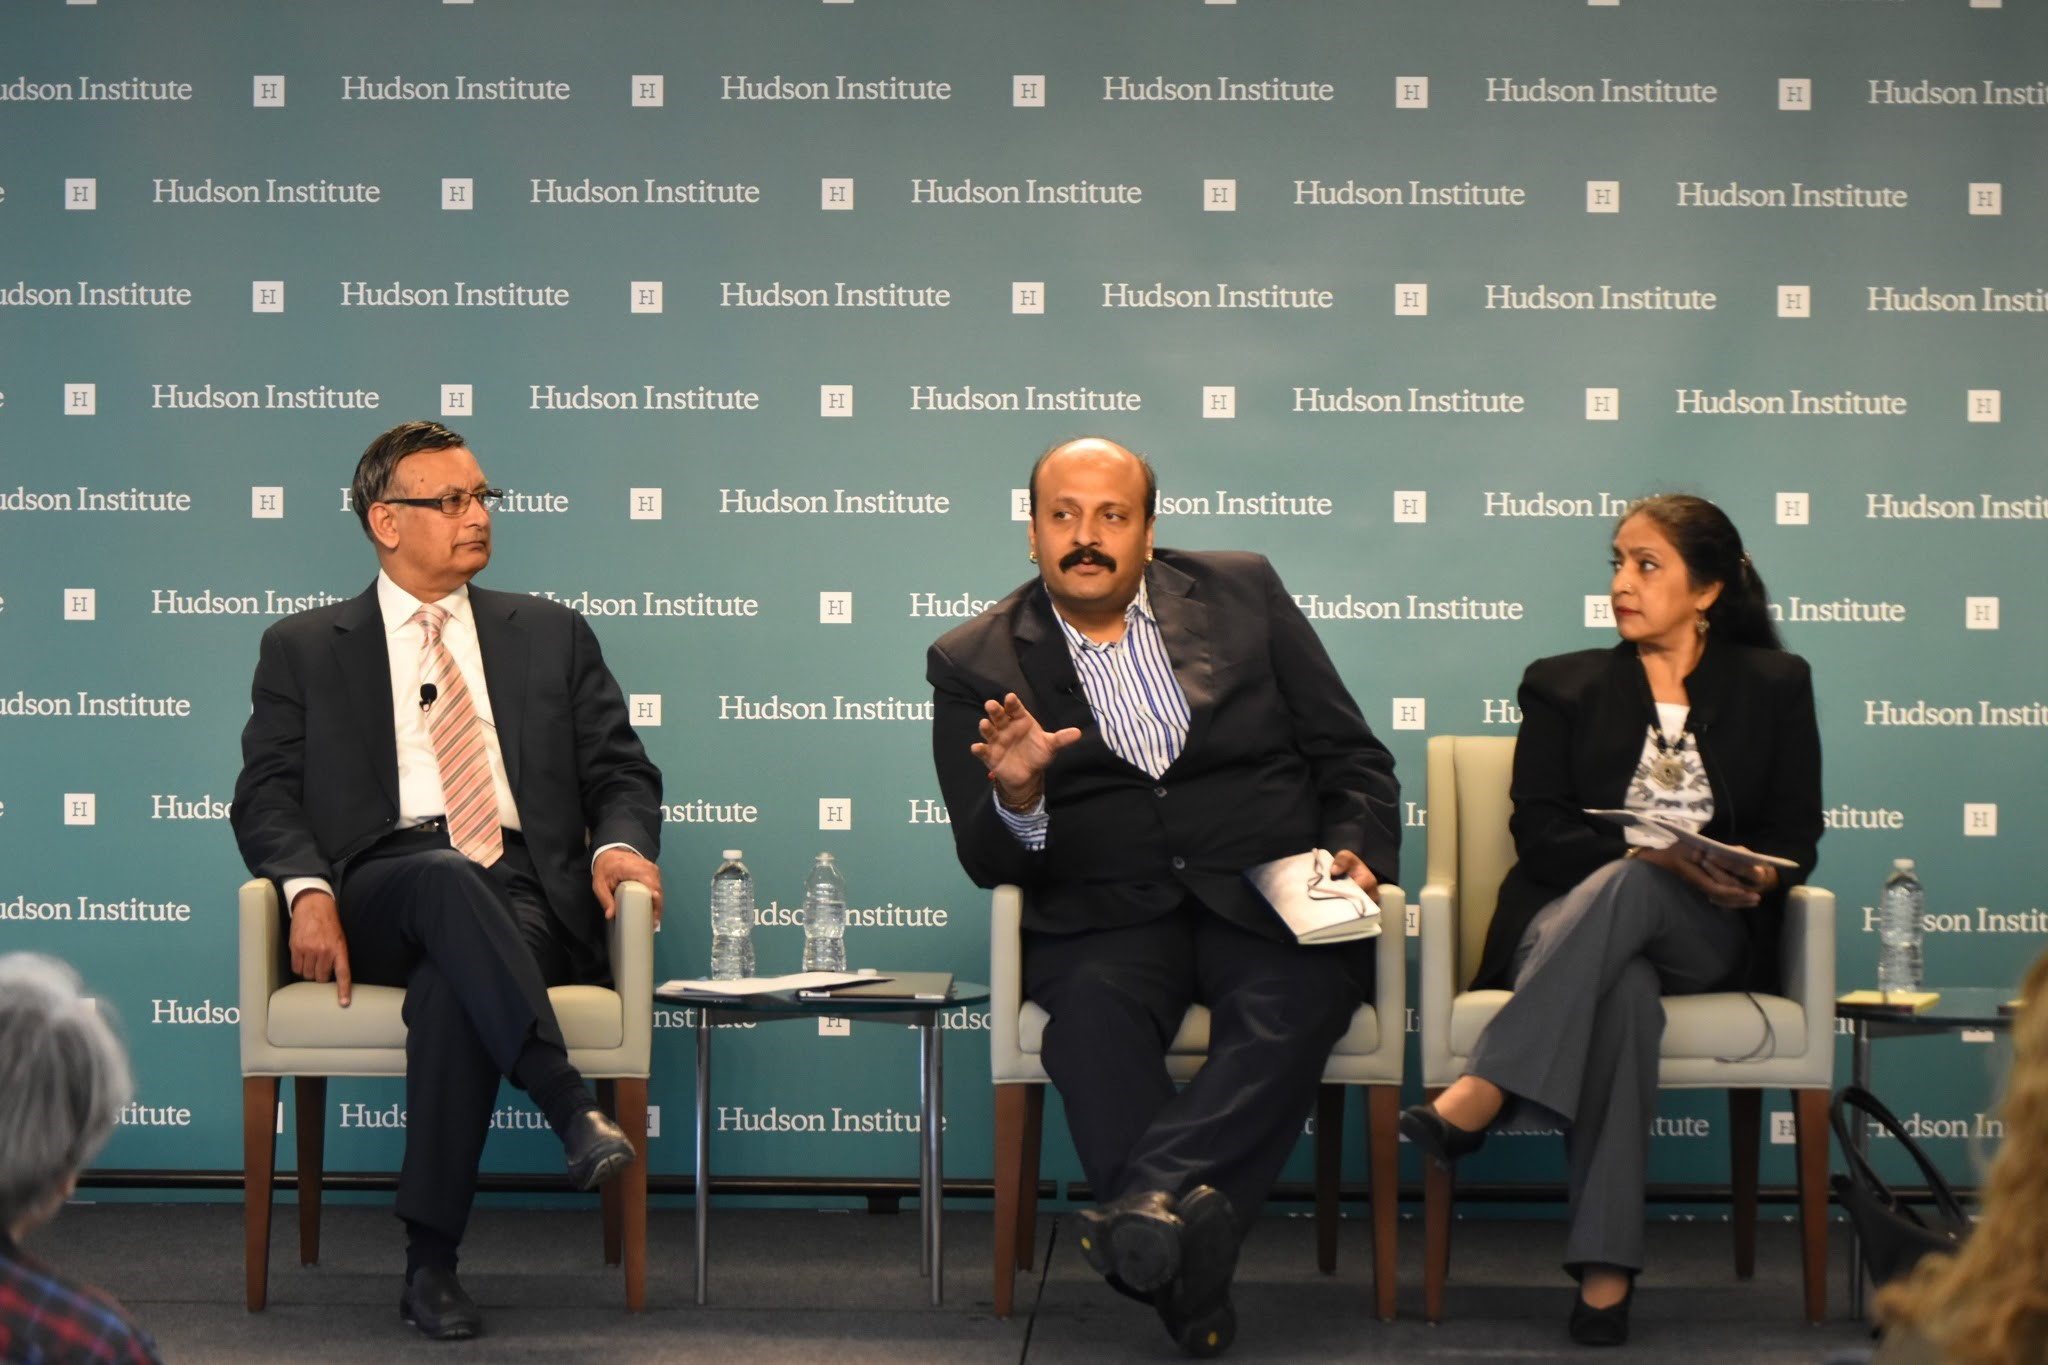 (From left to right: Ambassador Husain Haqqani, Dr. Amit Kapoor, and Ms. Ranjana Smetacek. Panel One observed a discussion on the status quo of India's healthcare and innovation sectors.)